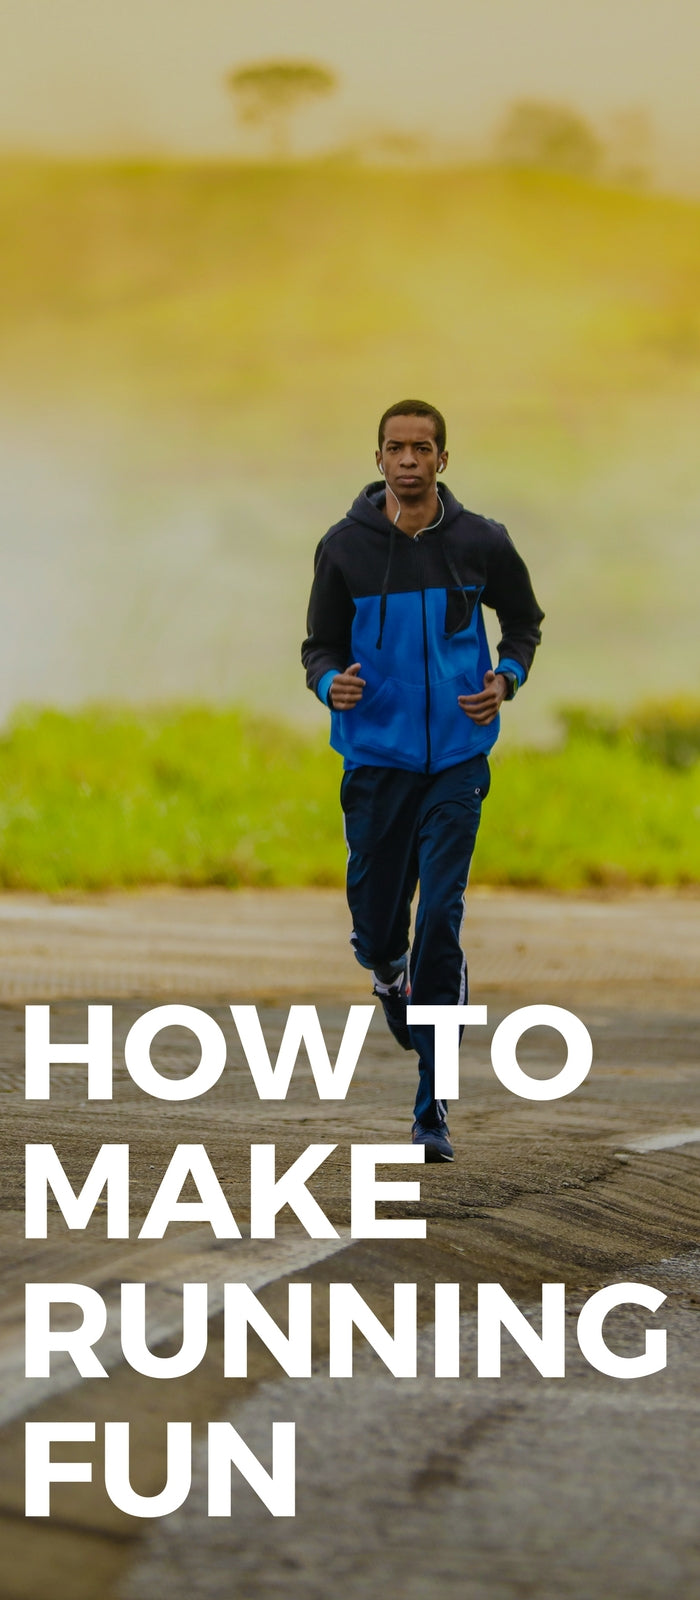 How to Make Running Fun #running #fitness